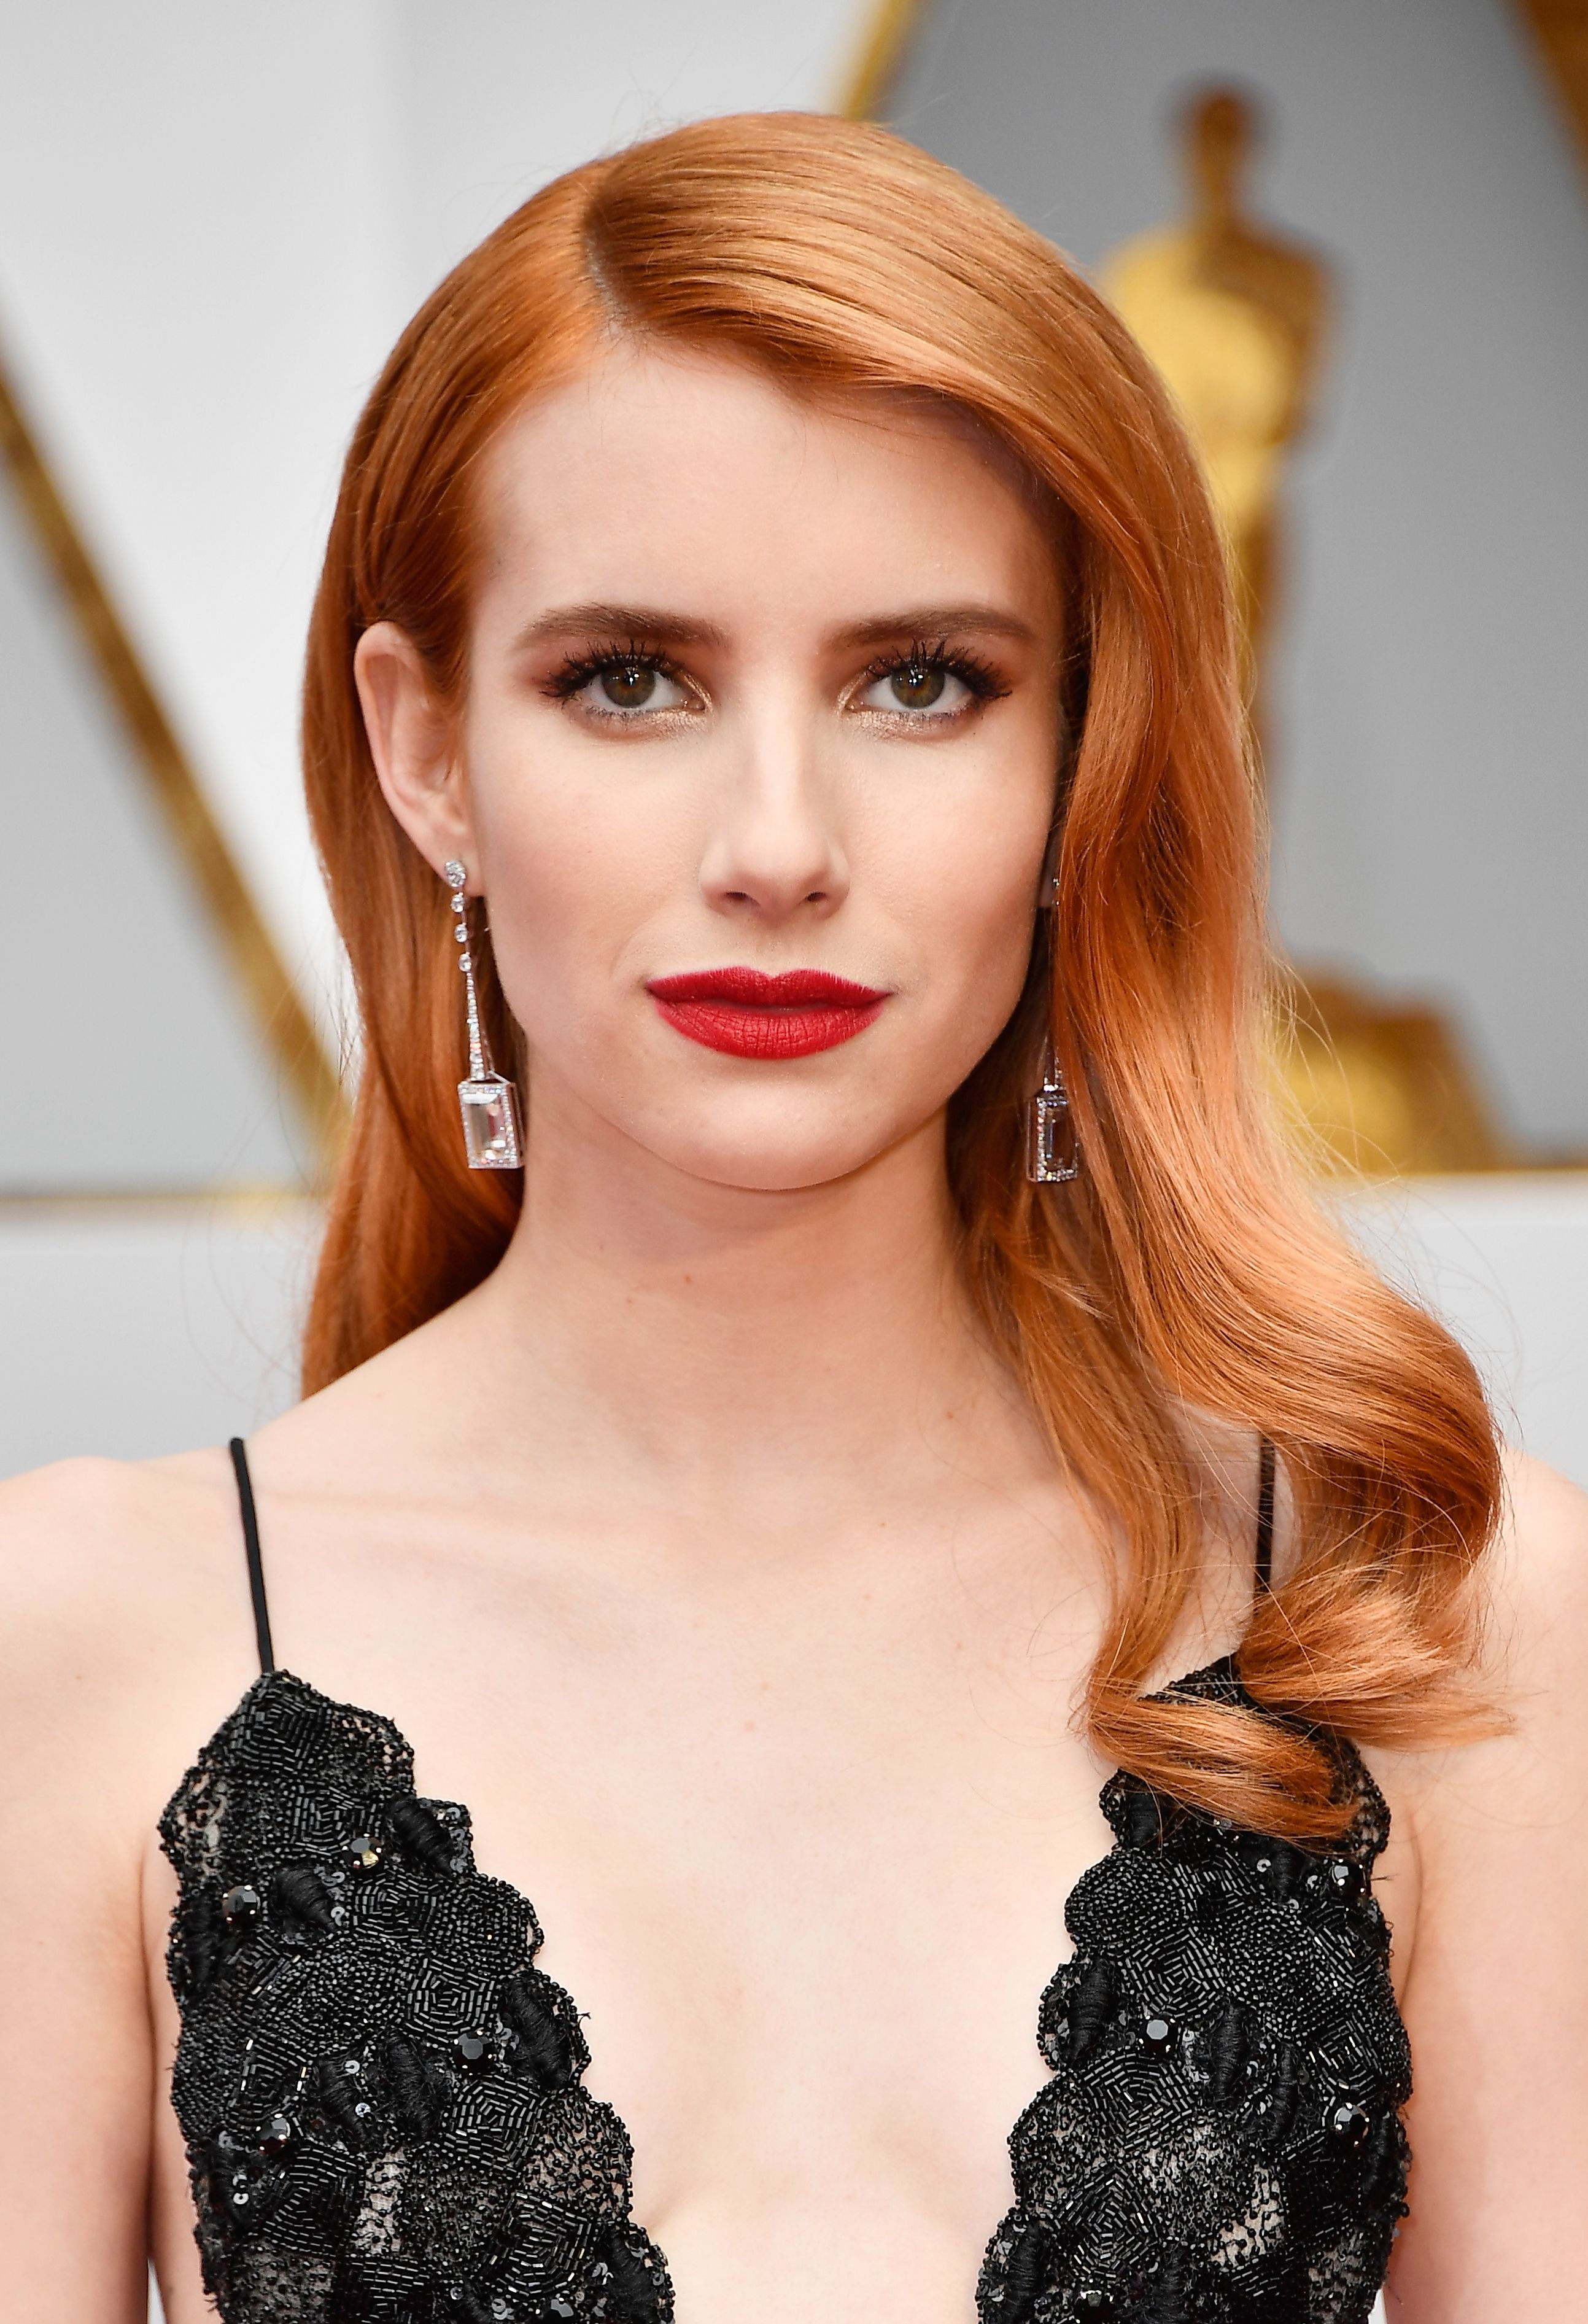 Top Hair Color Trends 2018 Best Hair Dye Ideas For The Year